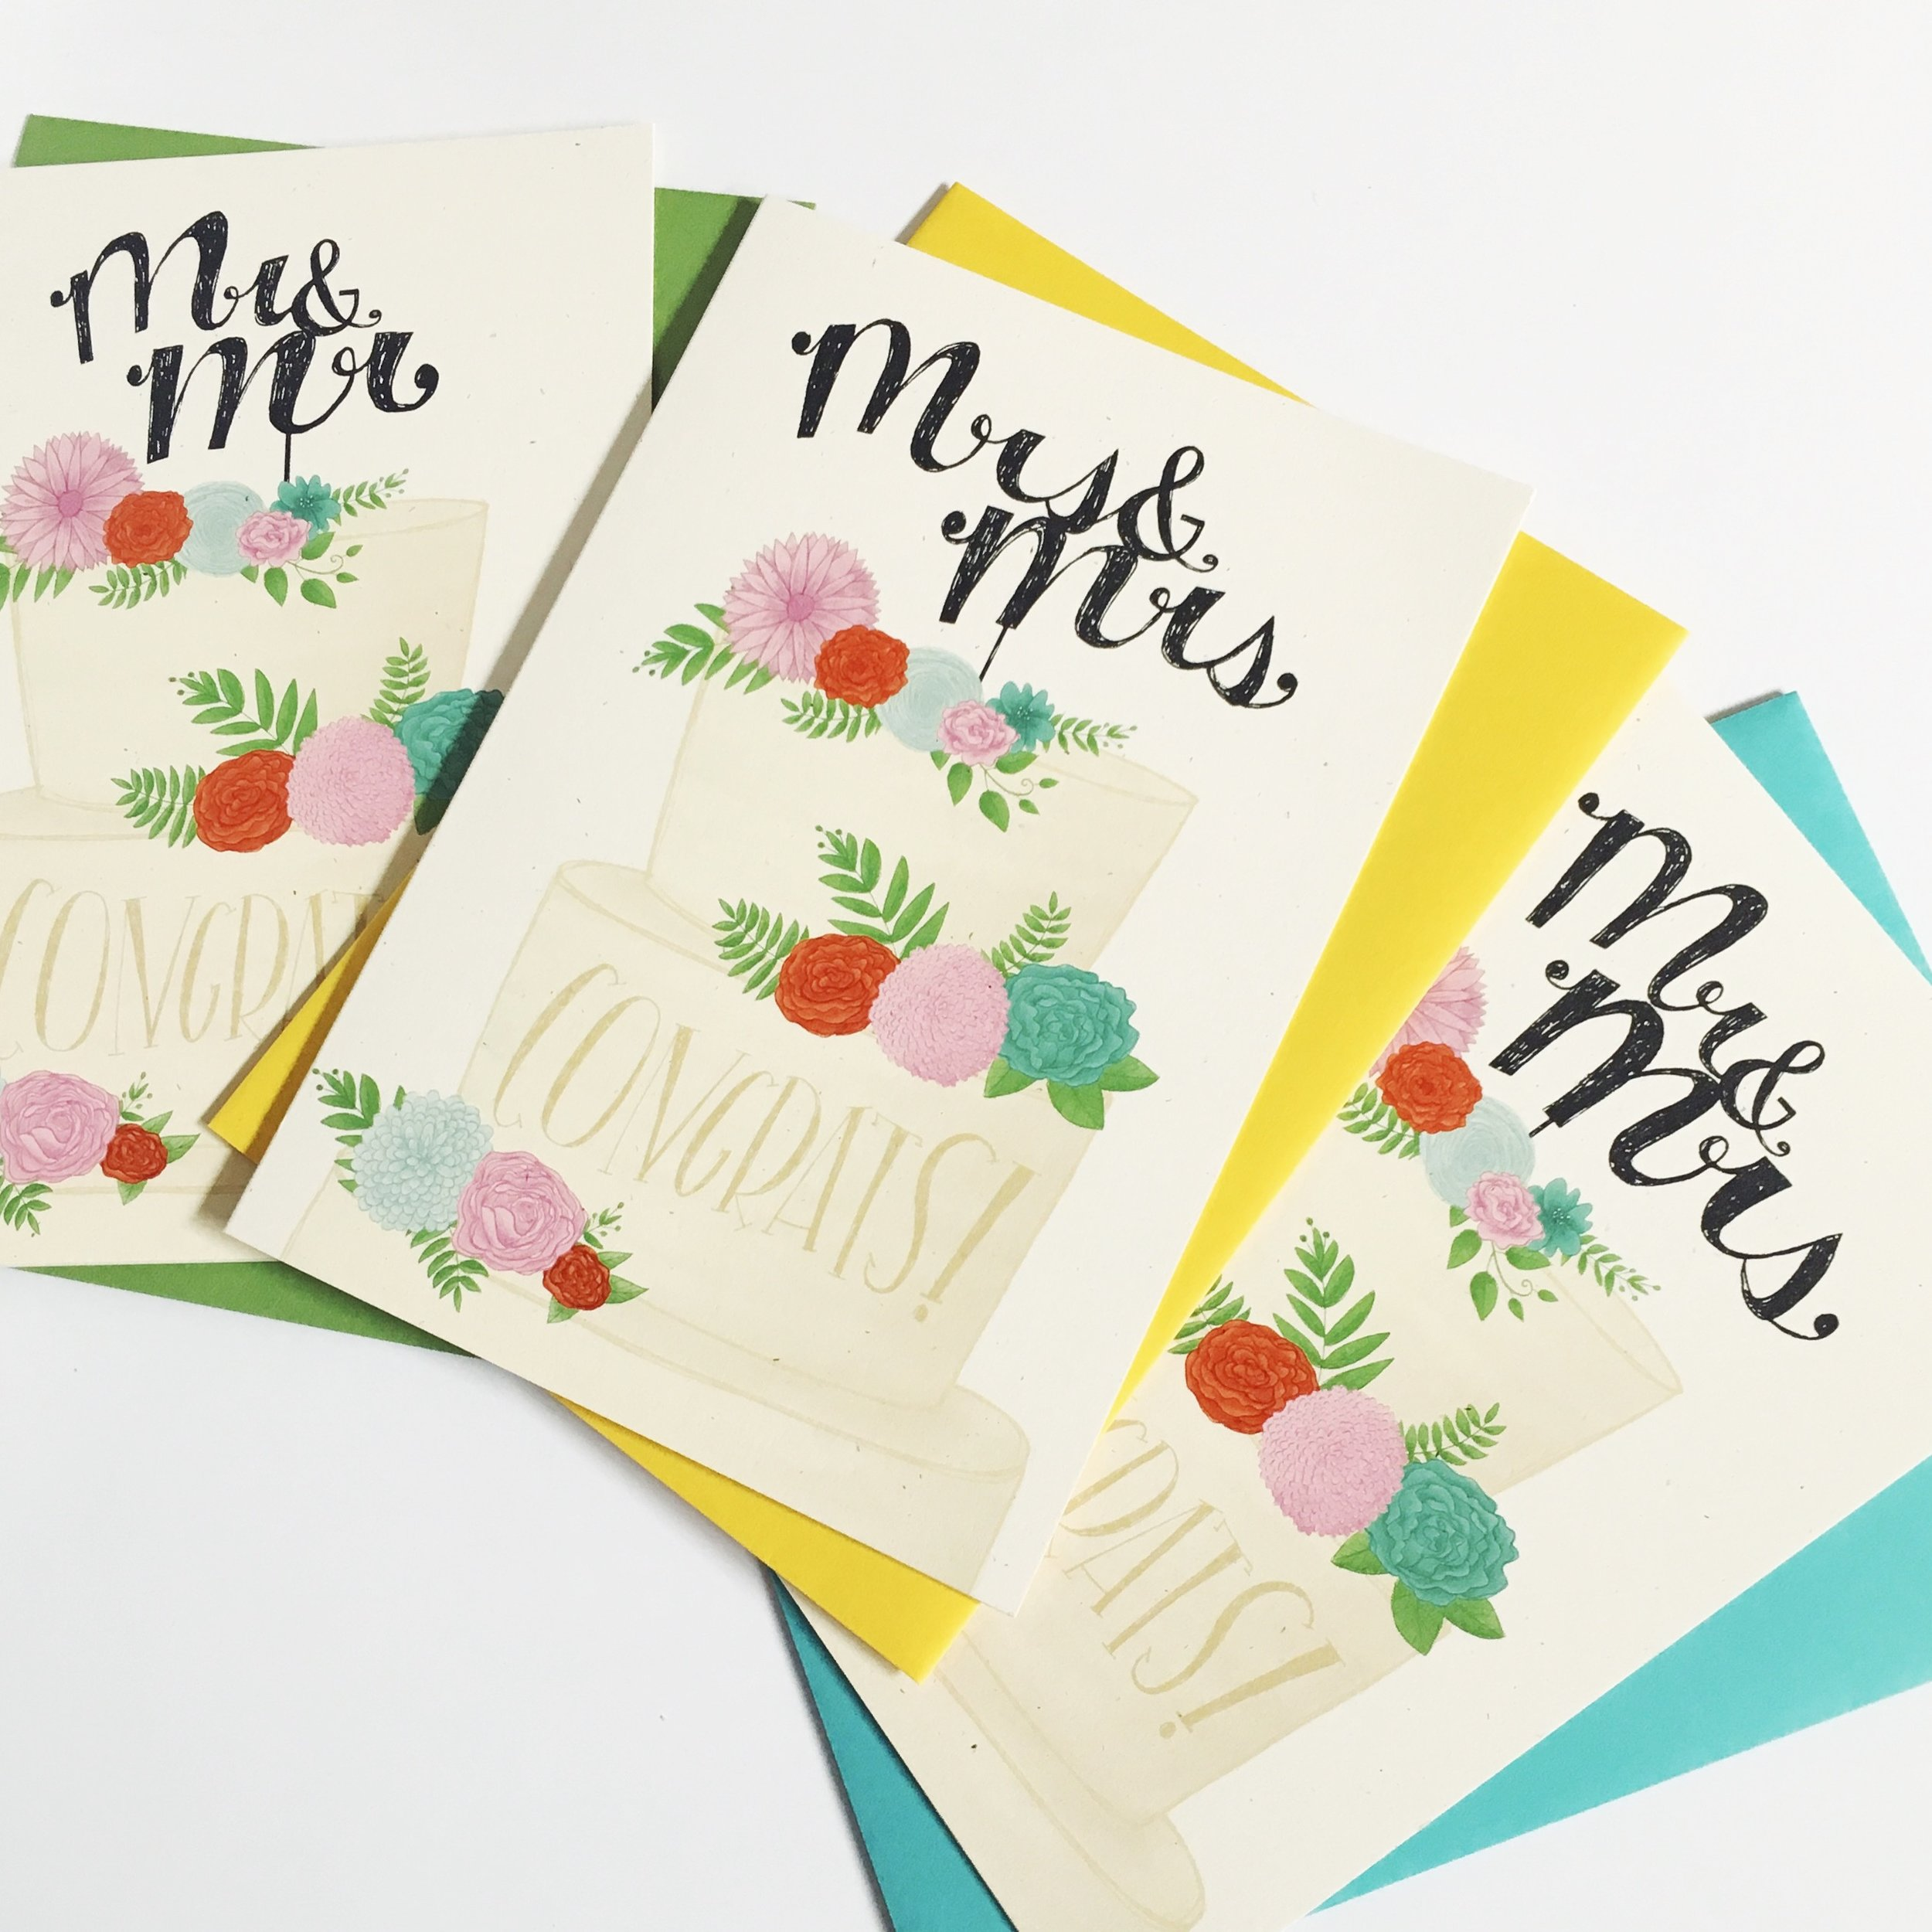 Wedding Cards | Stationery | Illustration | Katie Vaz